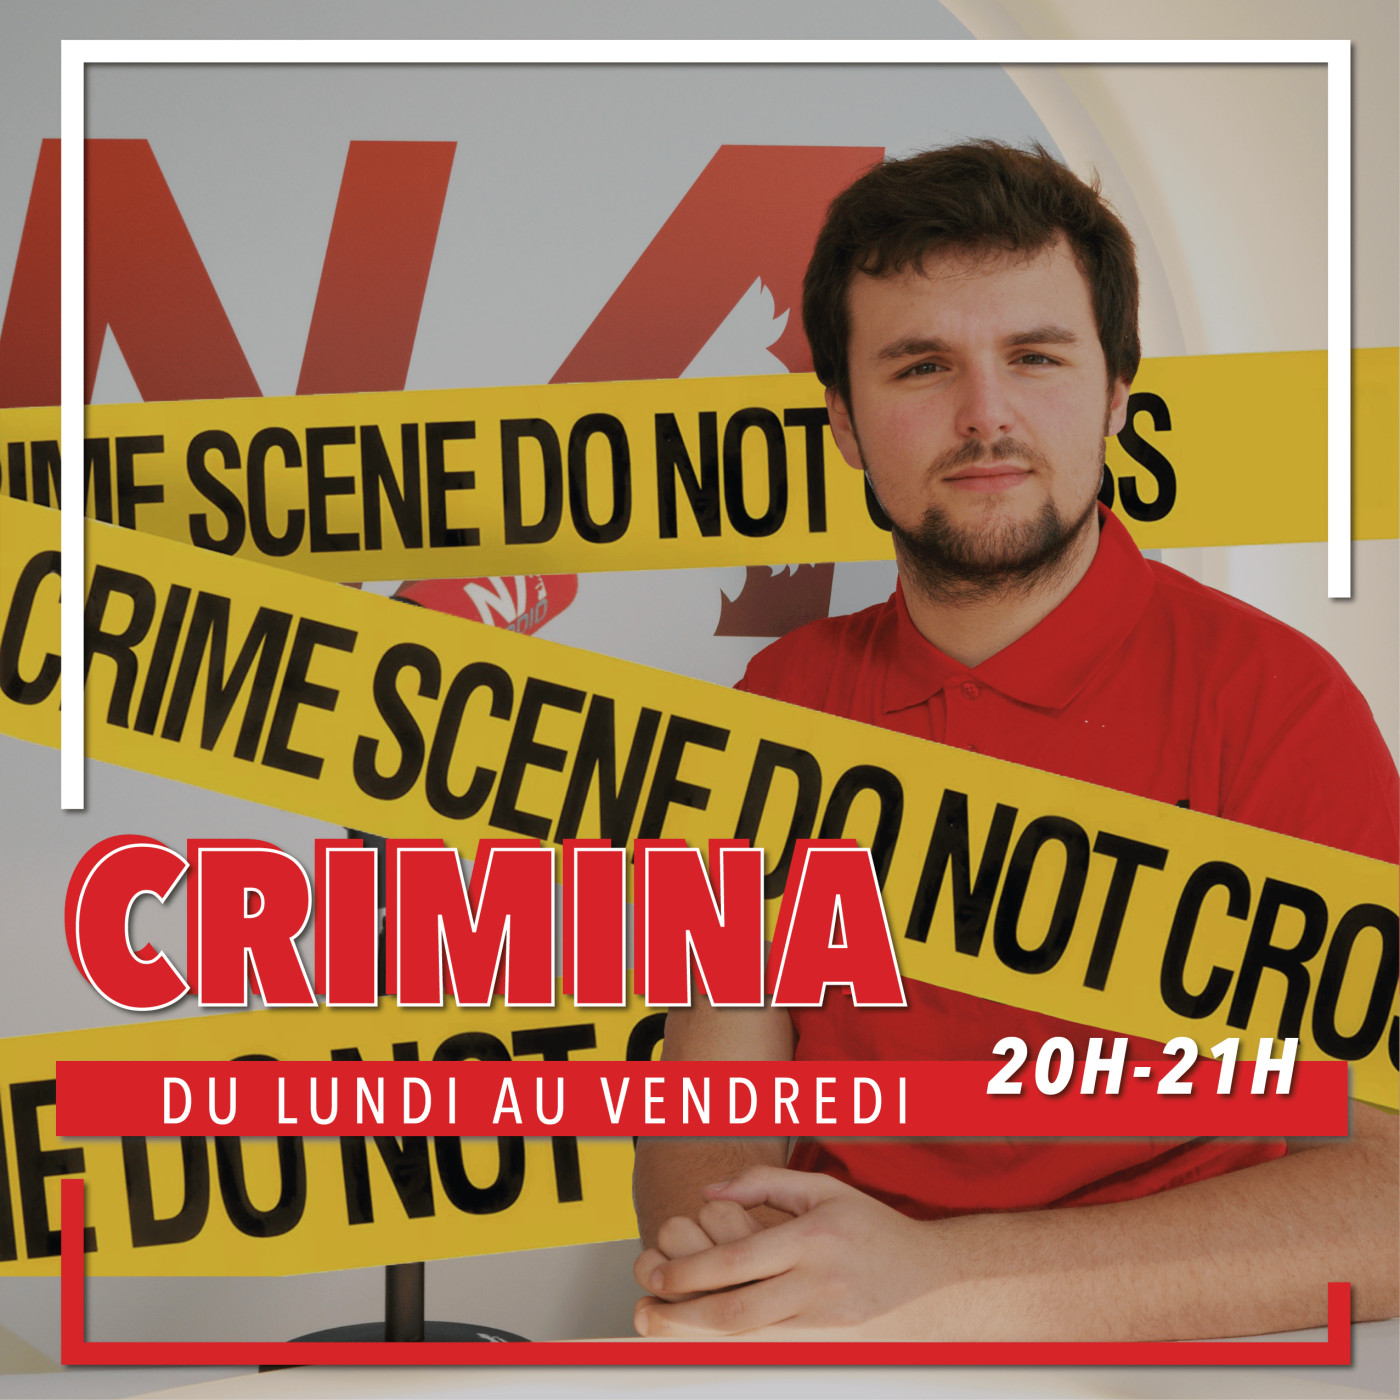 CRIMINA - ASSASSINAT DU PREFET ERIGNAC